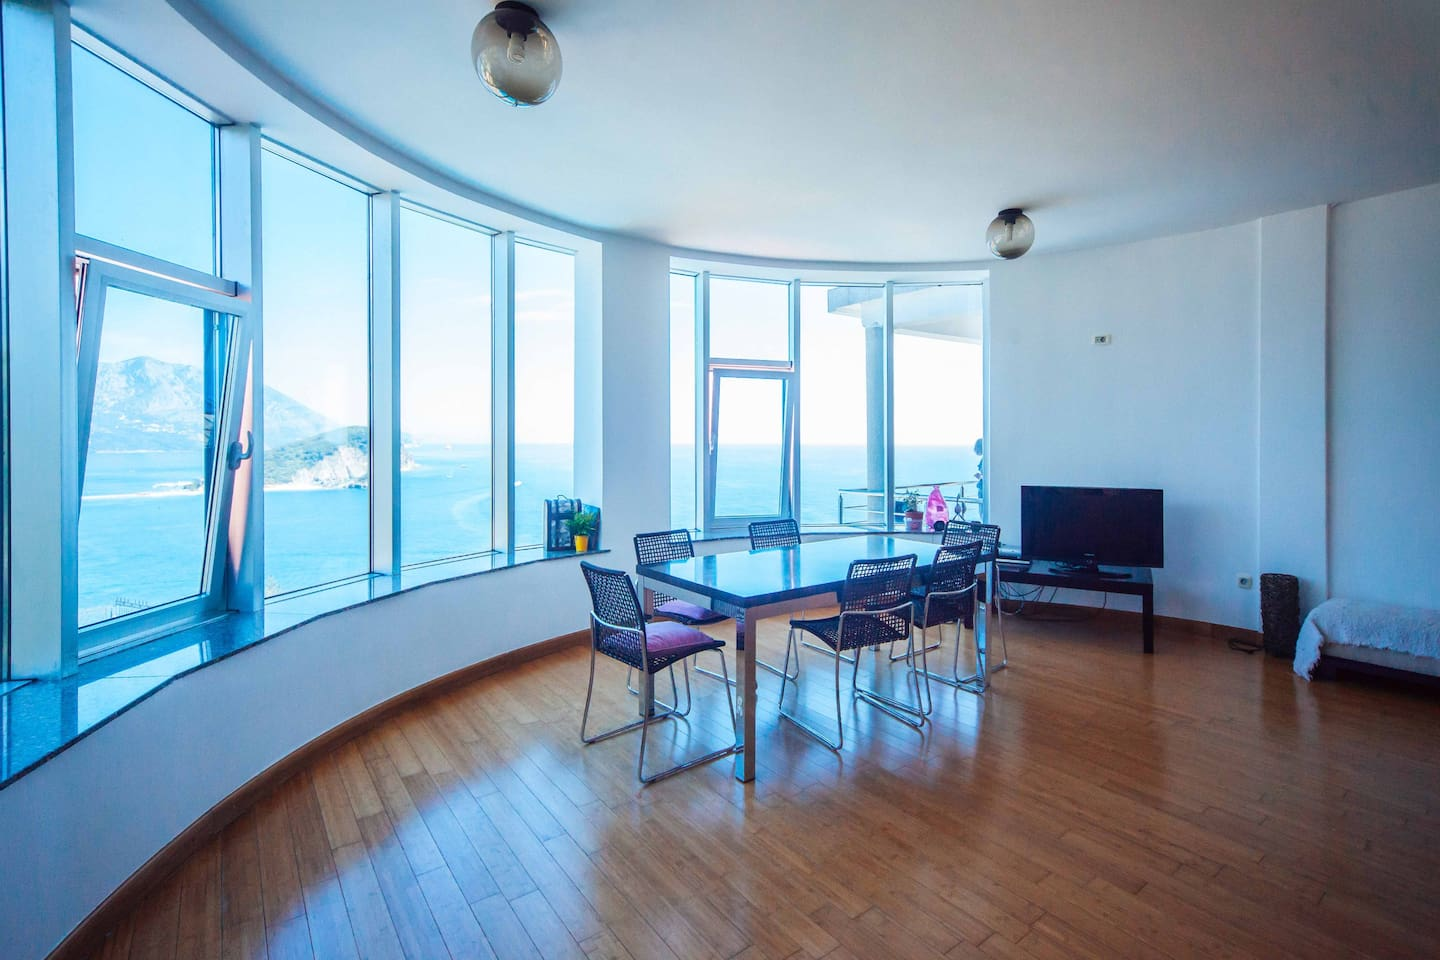 Living room dining table can host large companies